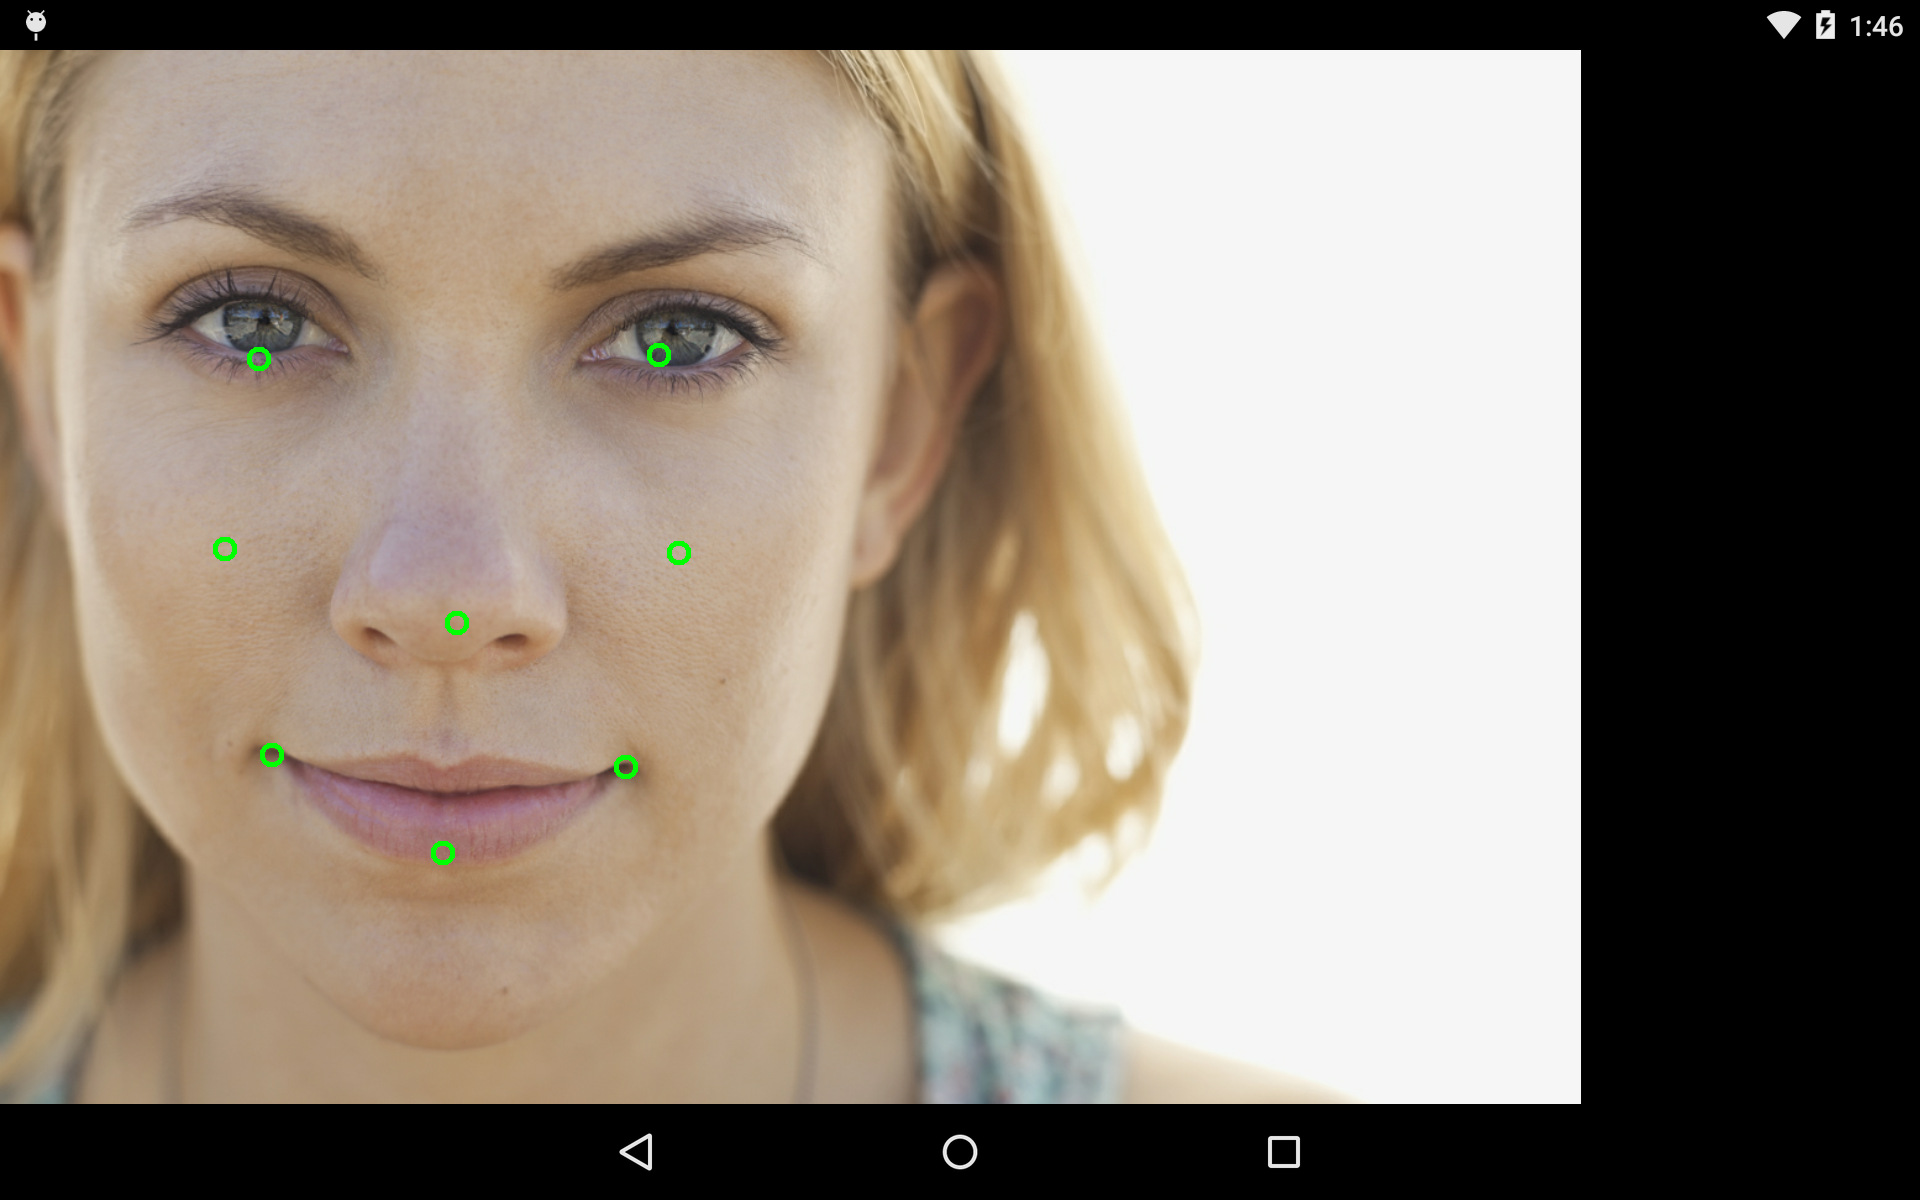 Eye Tracking Android Code - PyGaze: Open-source toolbox for